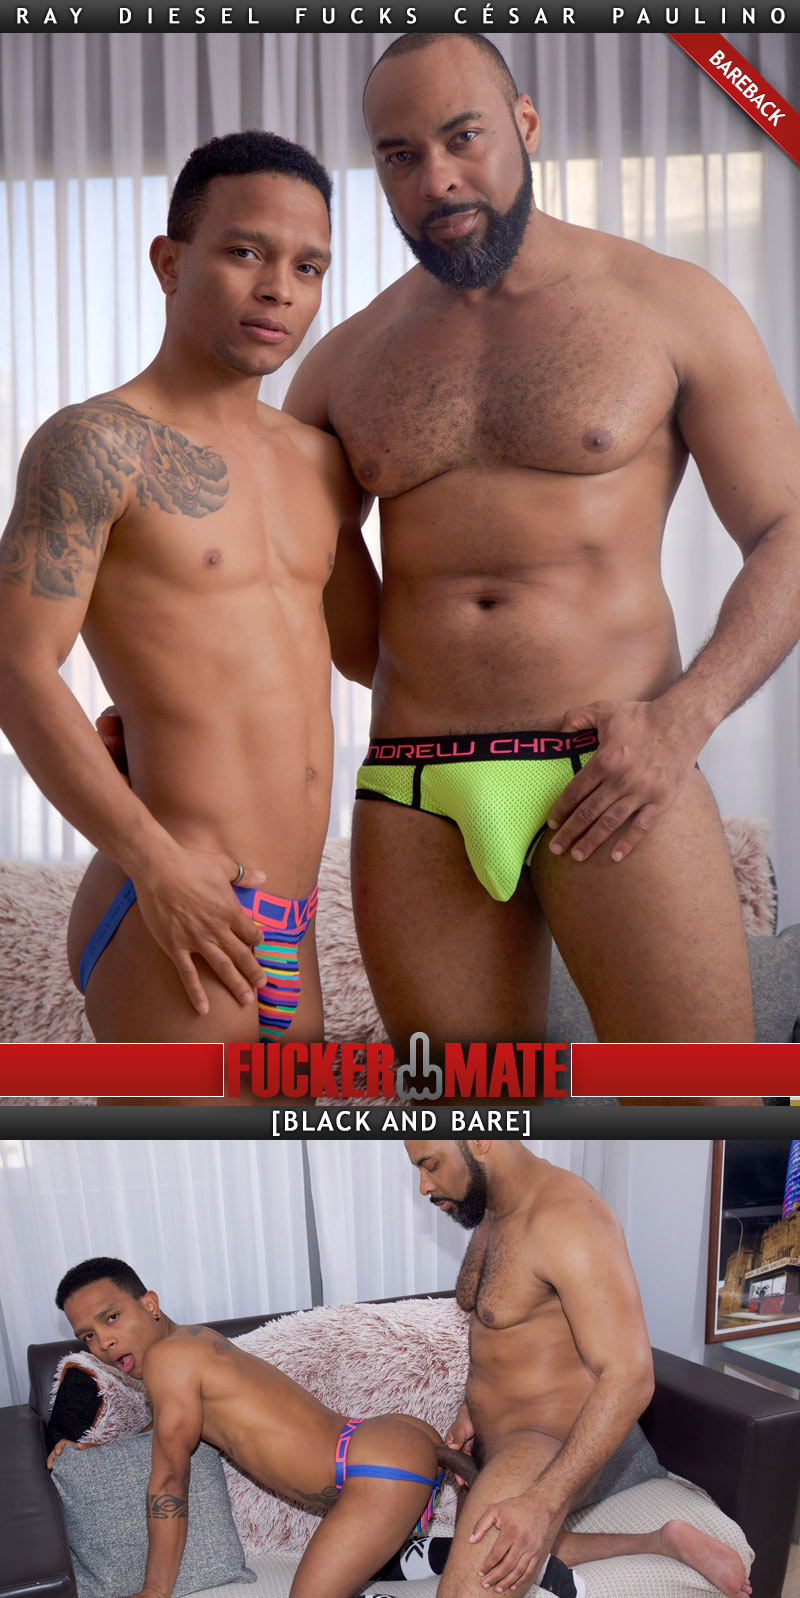 Black and Bare (Ray Diesel Fucks César Paulino) (Bareback) at Fuckermate